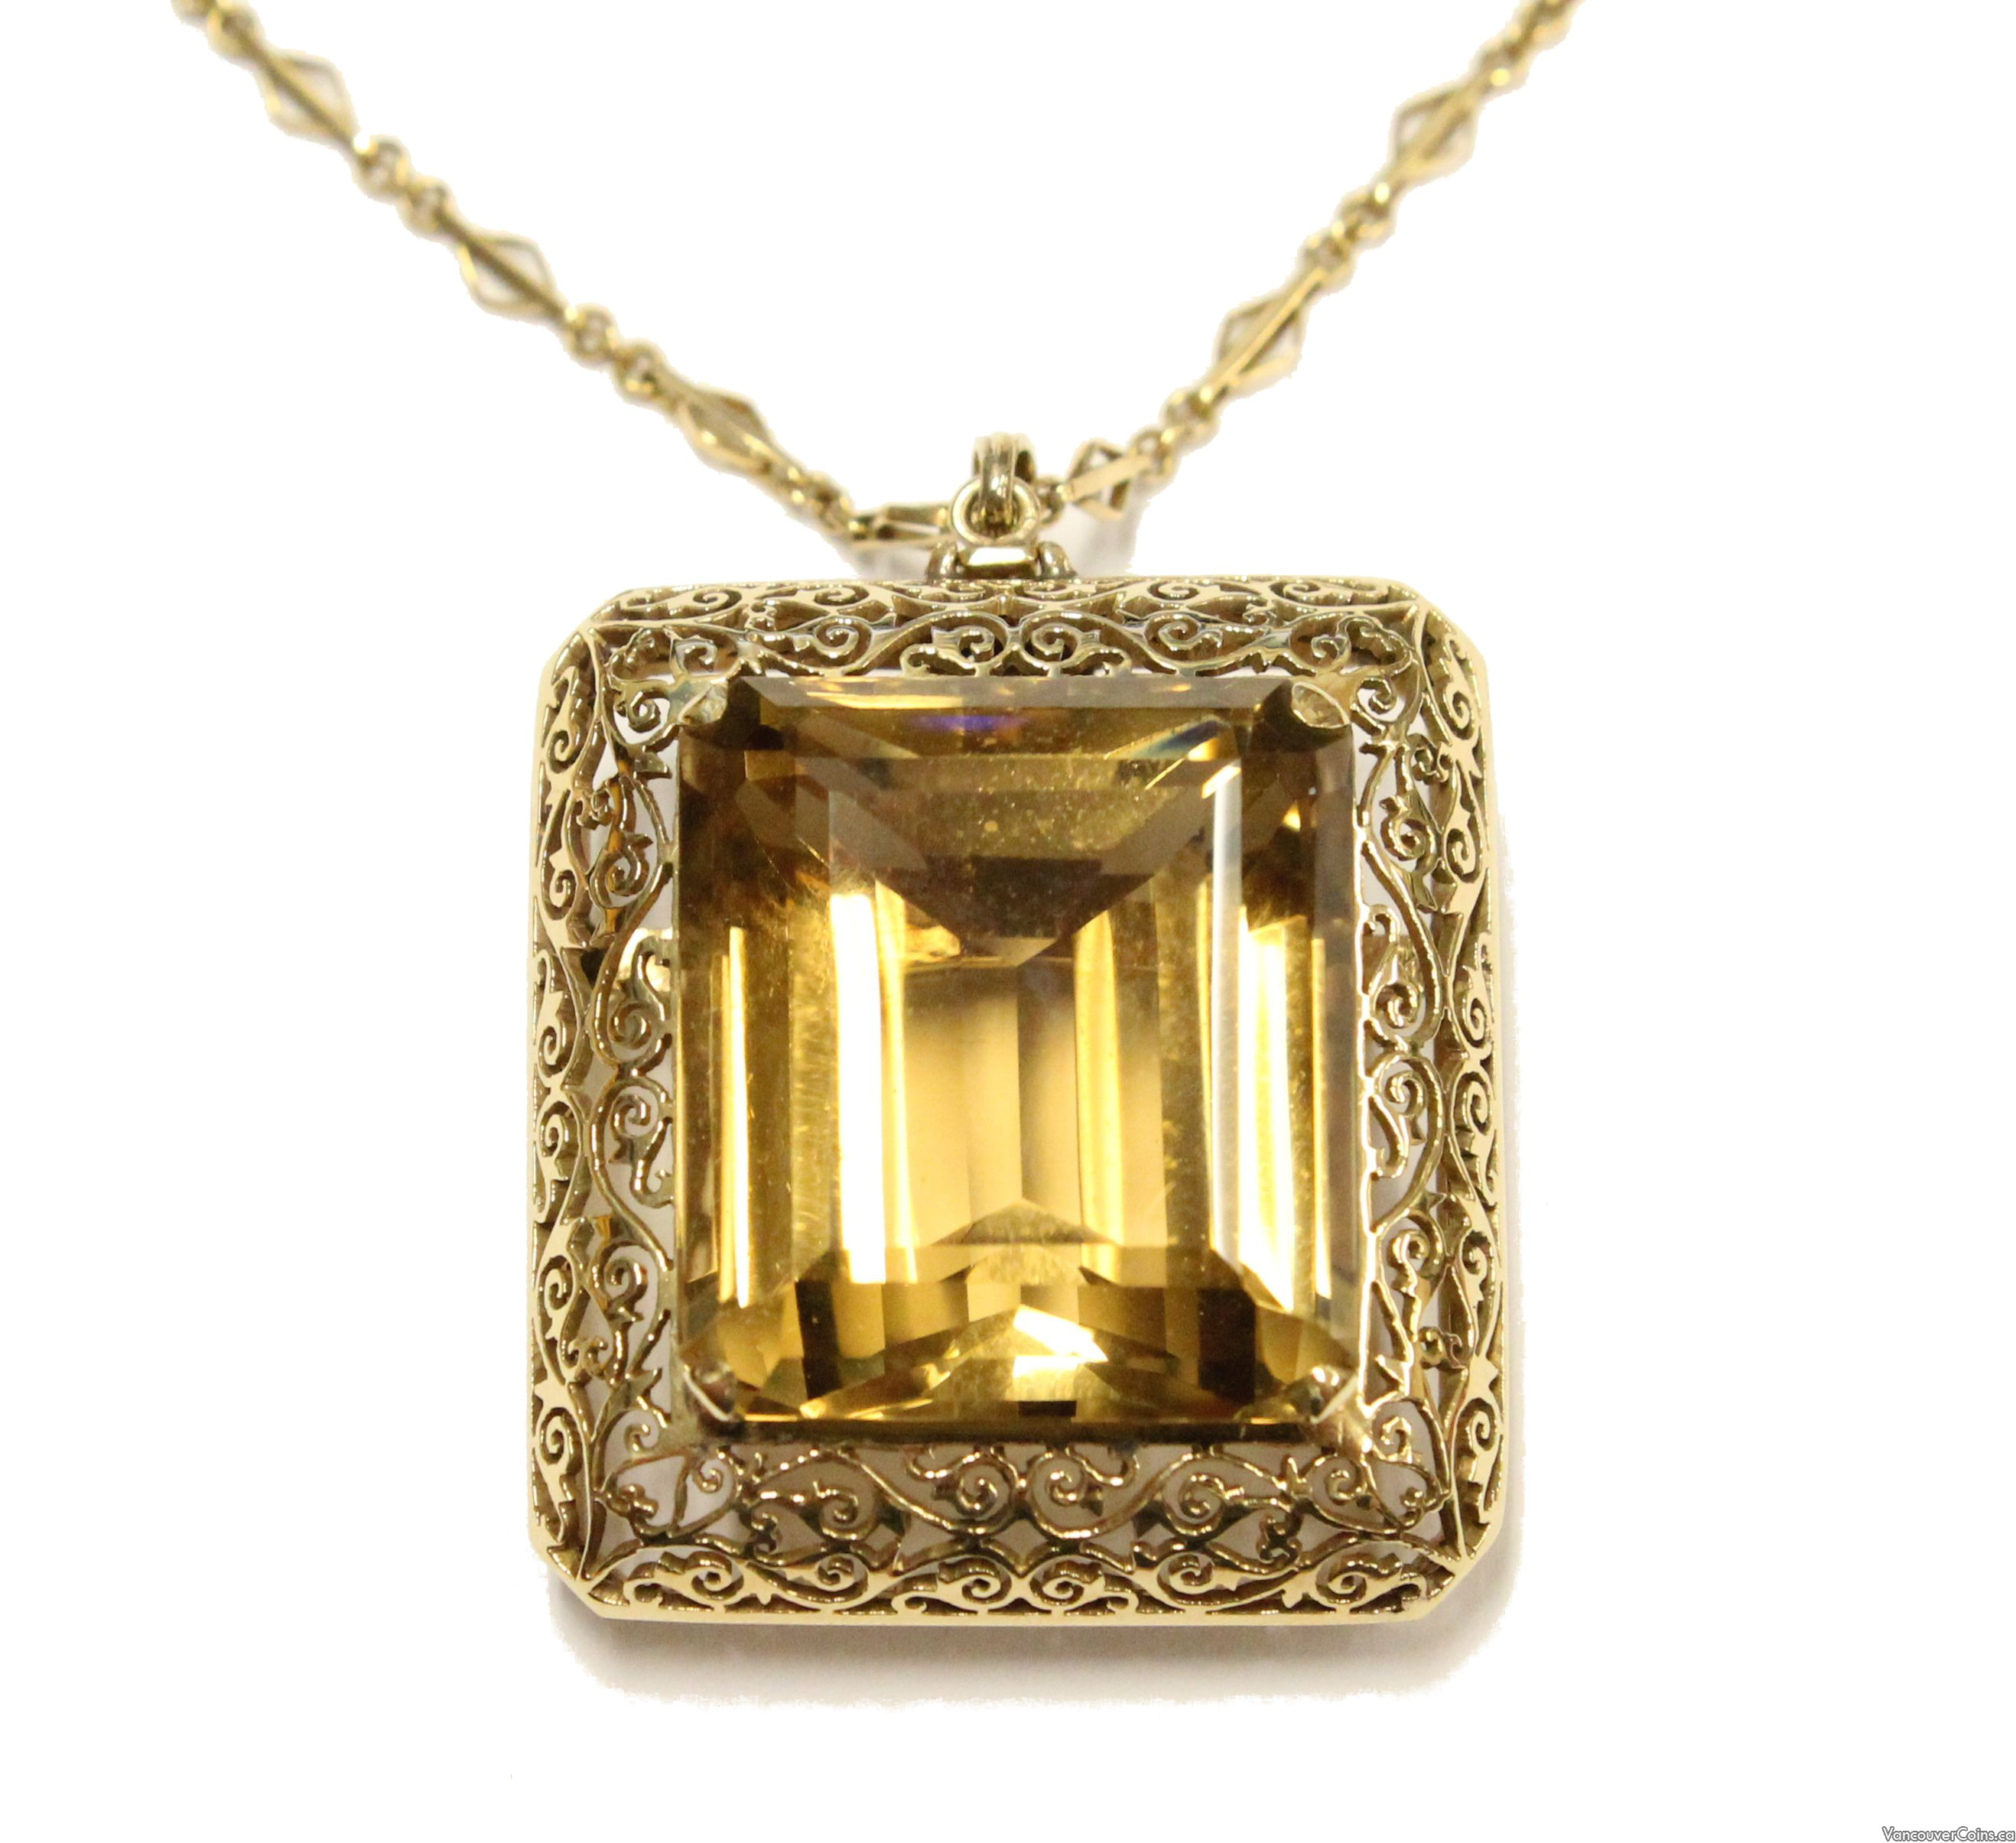 68.32 ct Citrine 14kt yg hand crafted pendant/brooch & 18kt yg chain